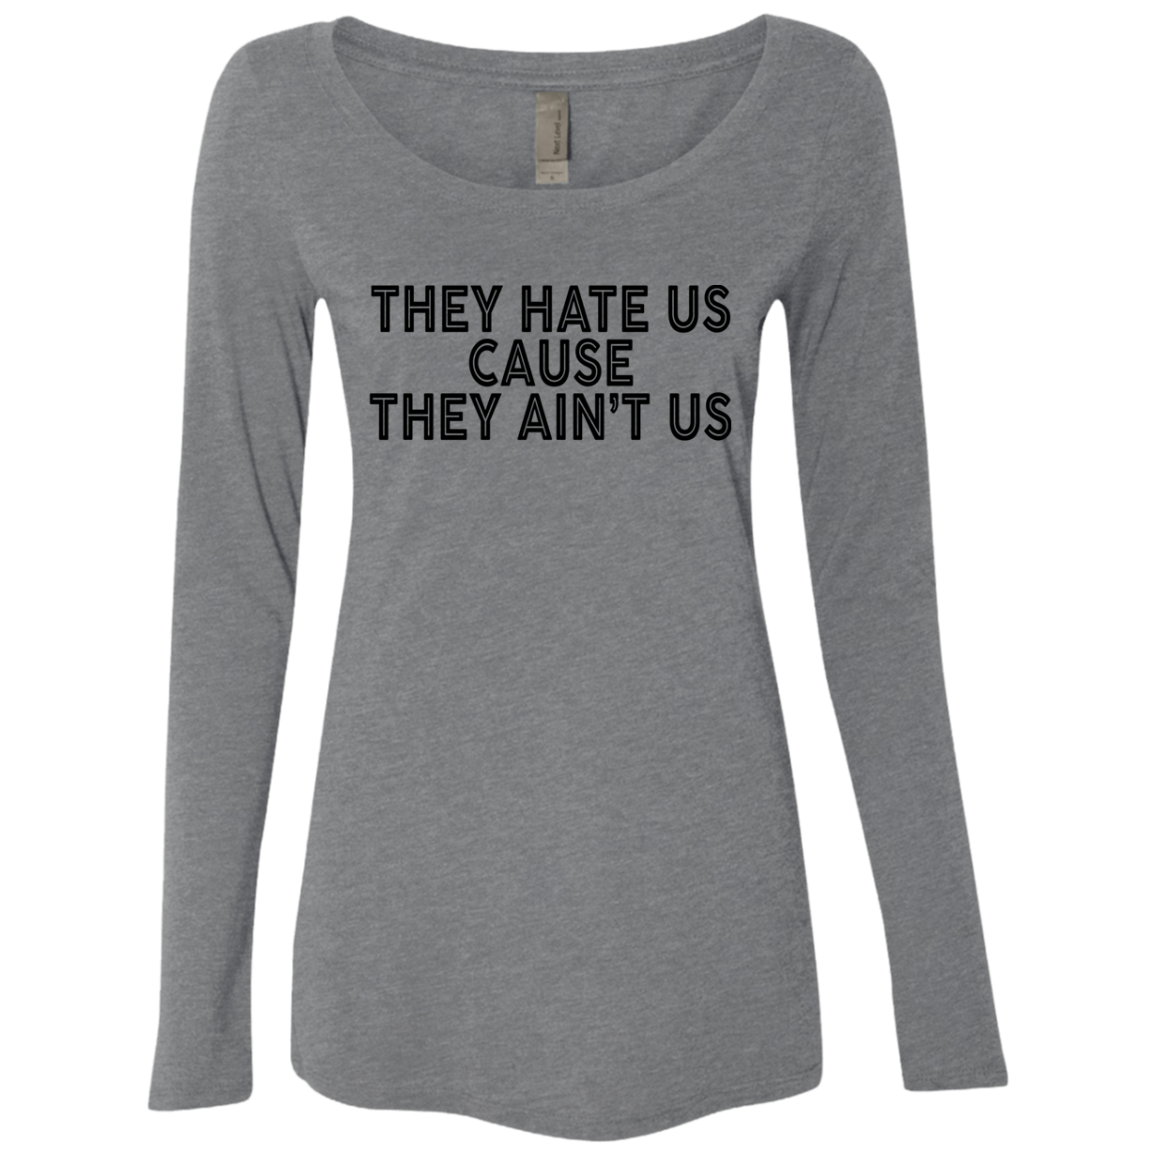 They Hate Us Cause They Ain't Us Women's Long Sleeve Tee